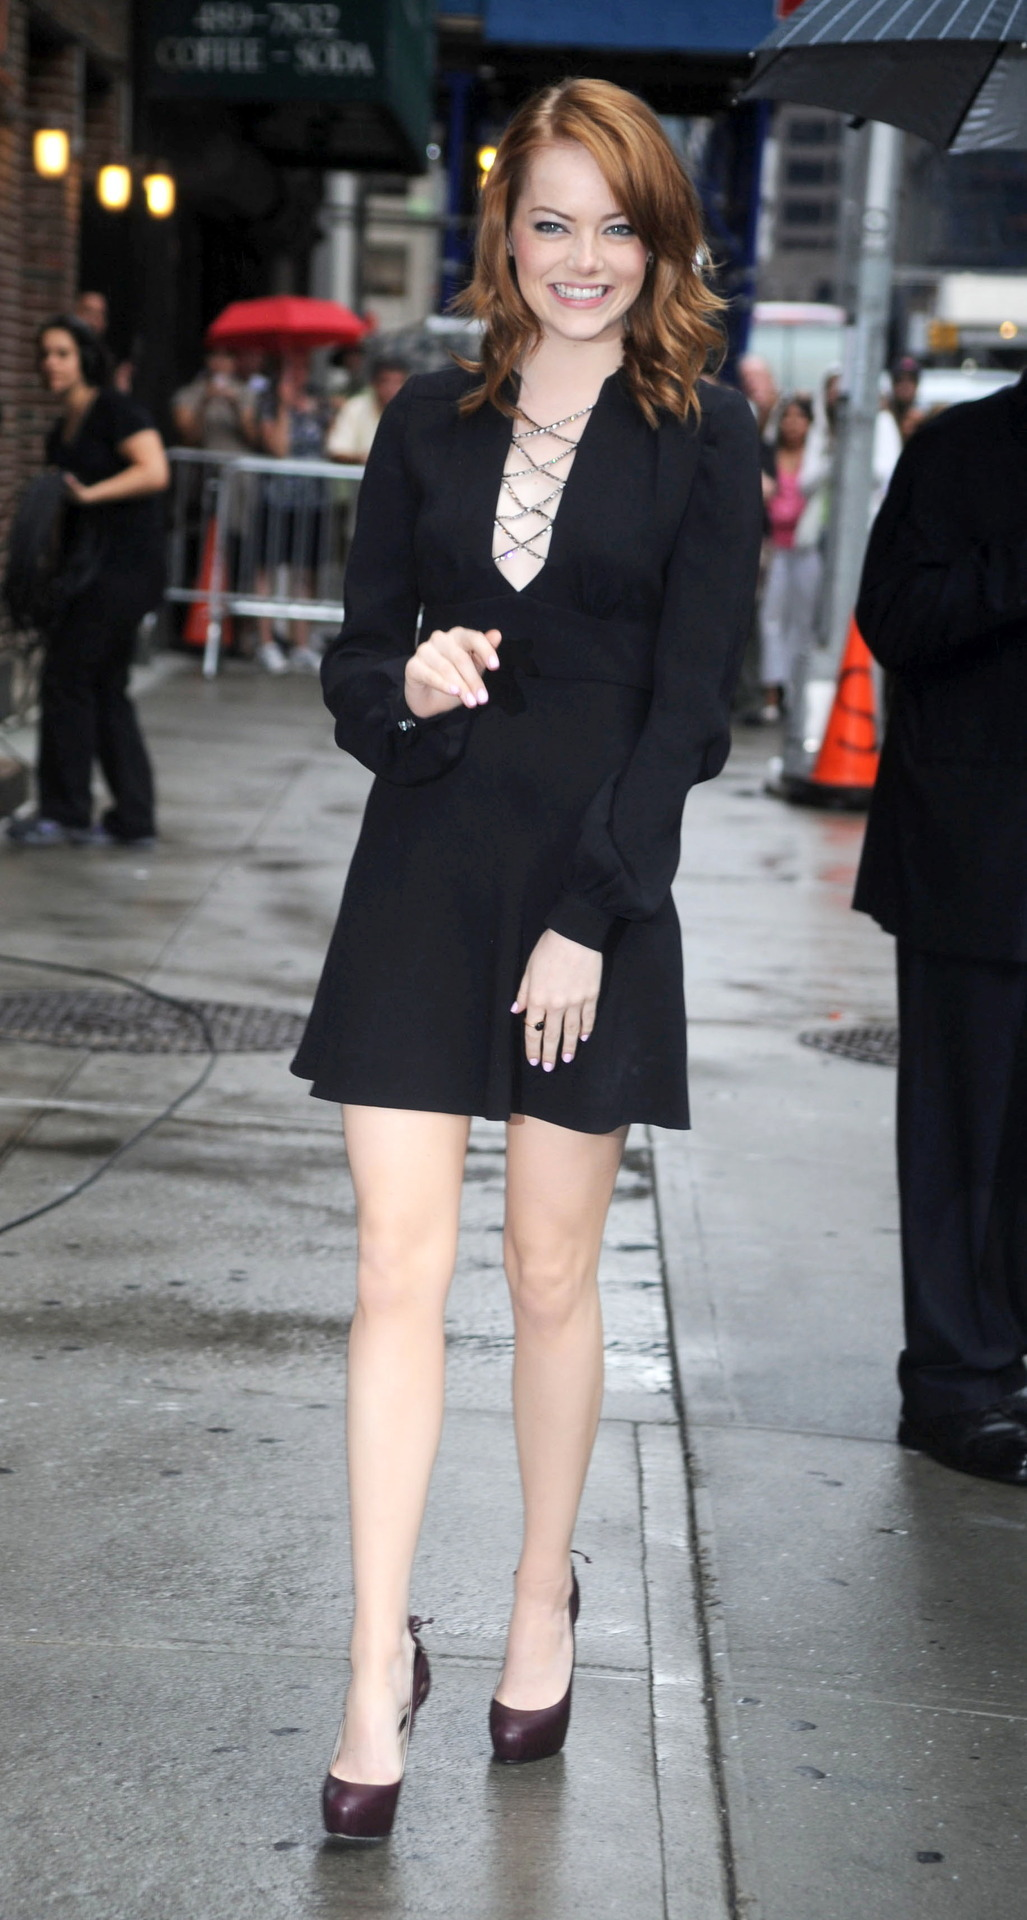 Emma Stone - Arriving At The Late Show With David Letterman 03.08.11Emma Stone - Source : SwaGirl.com